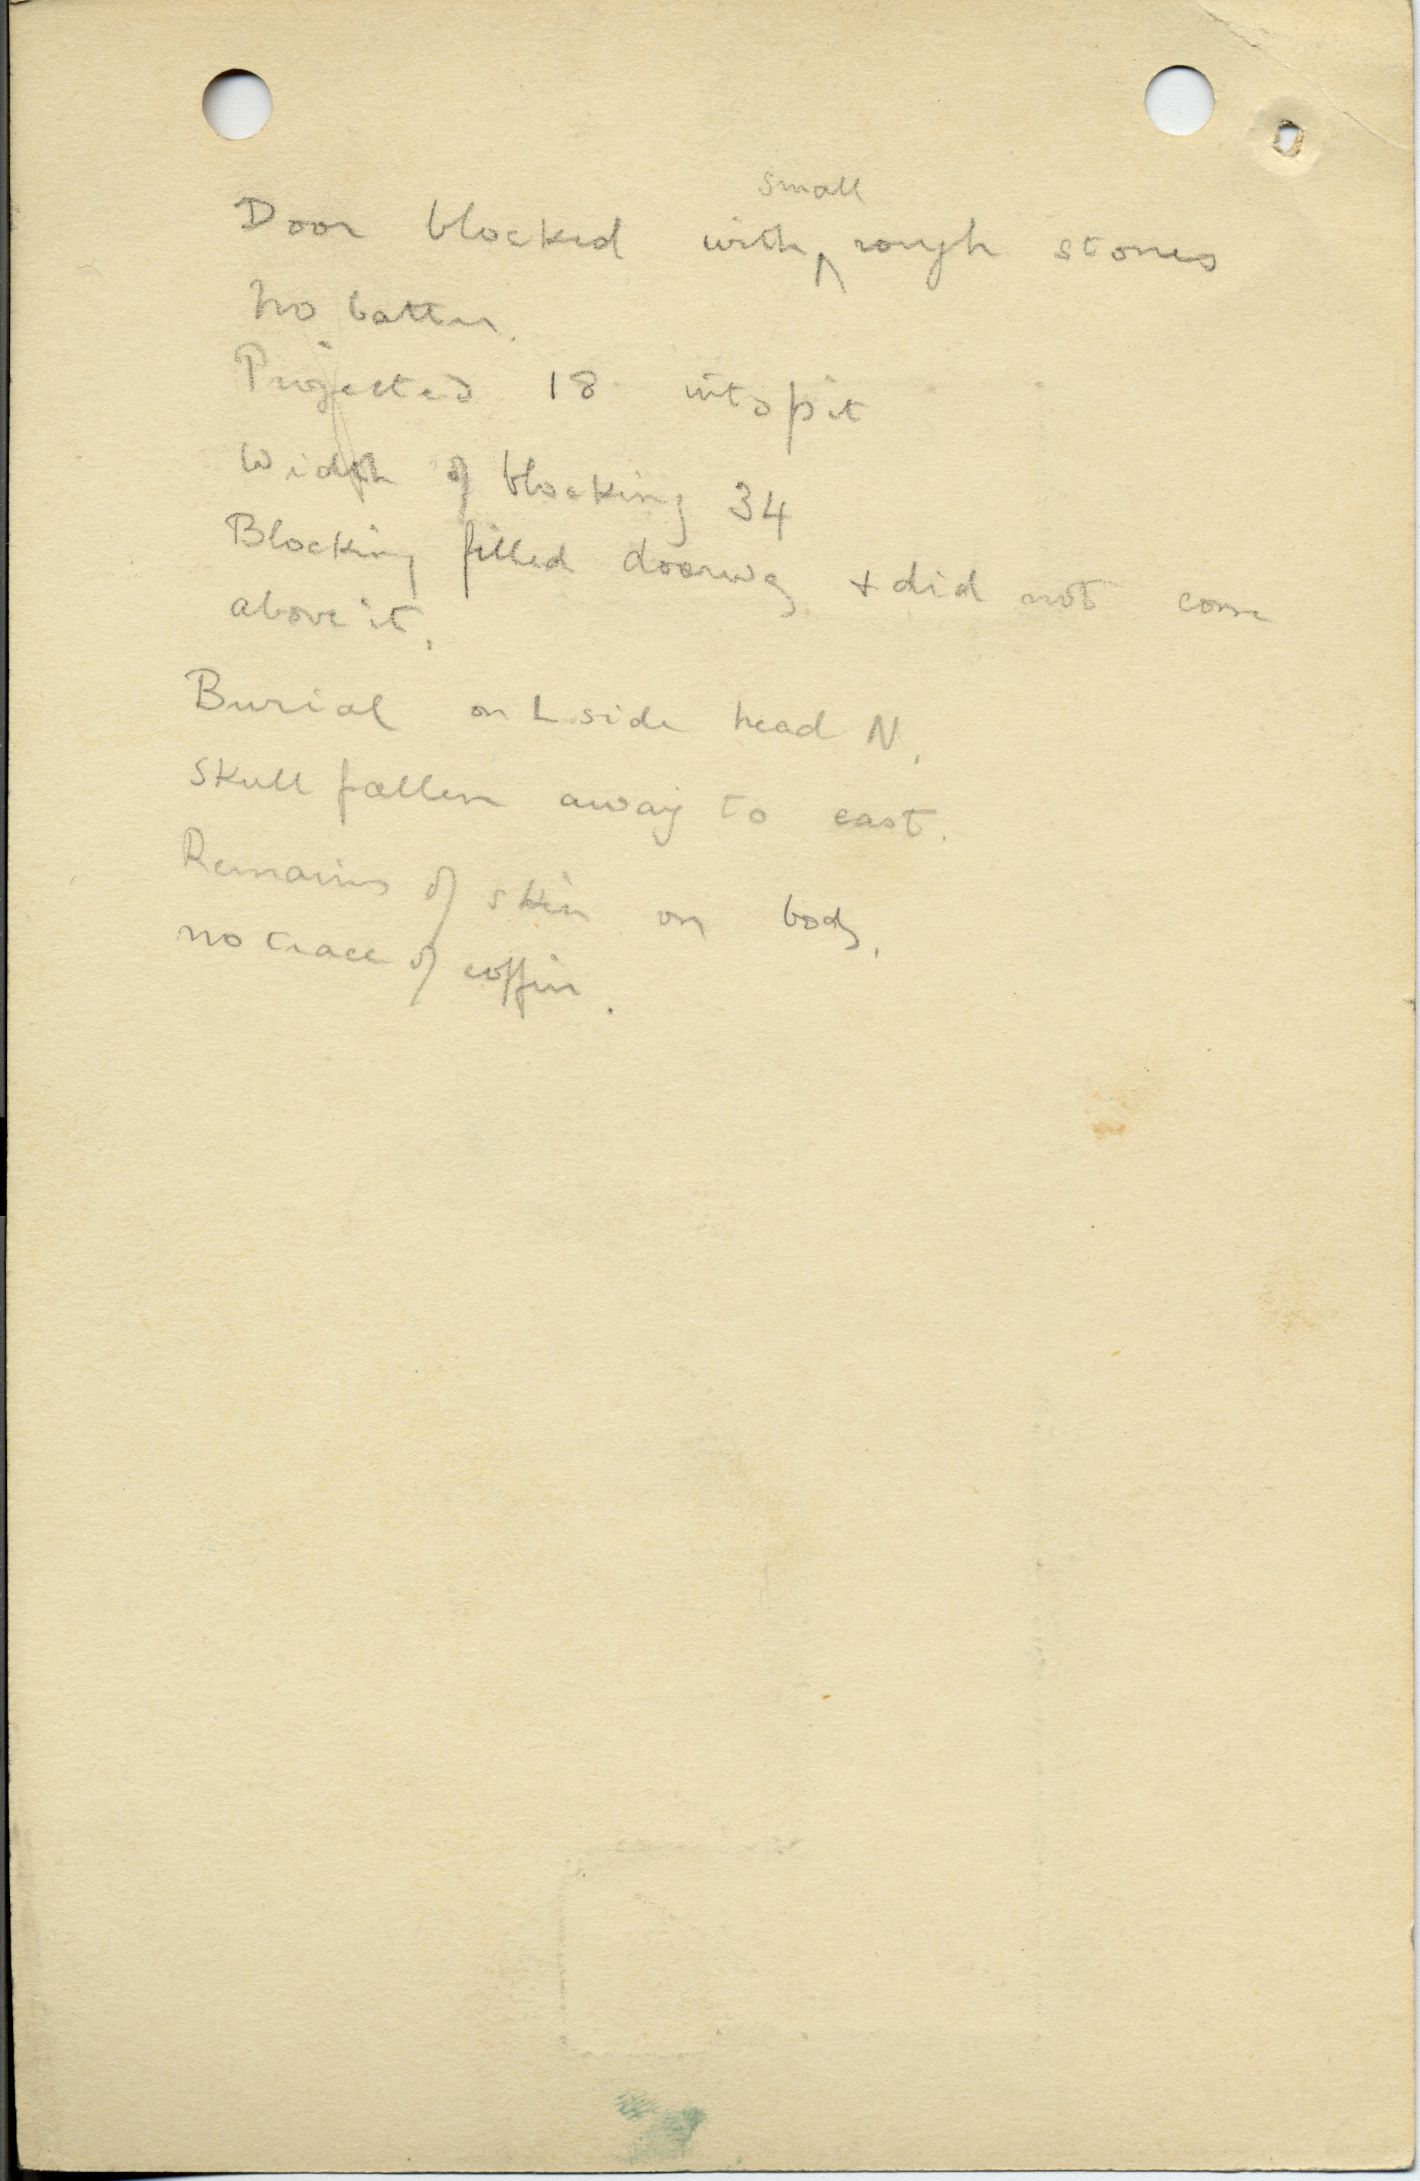 Notes: G 1043, Shaft A (II), notes